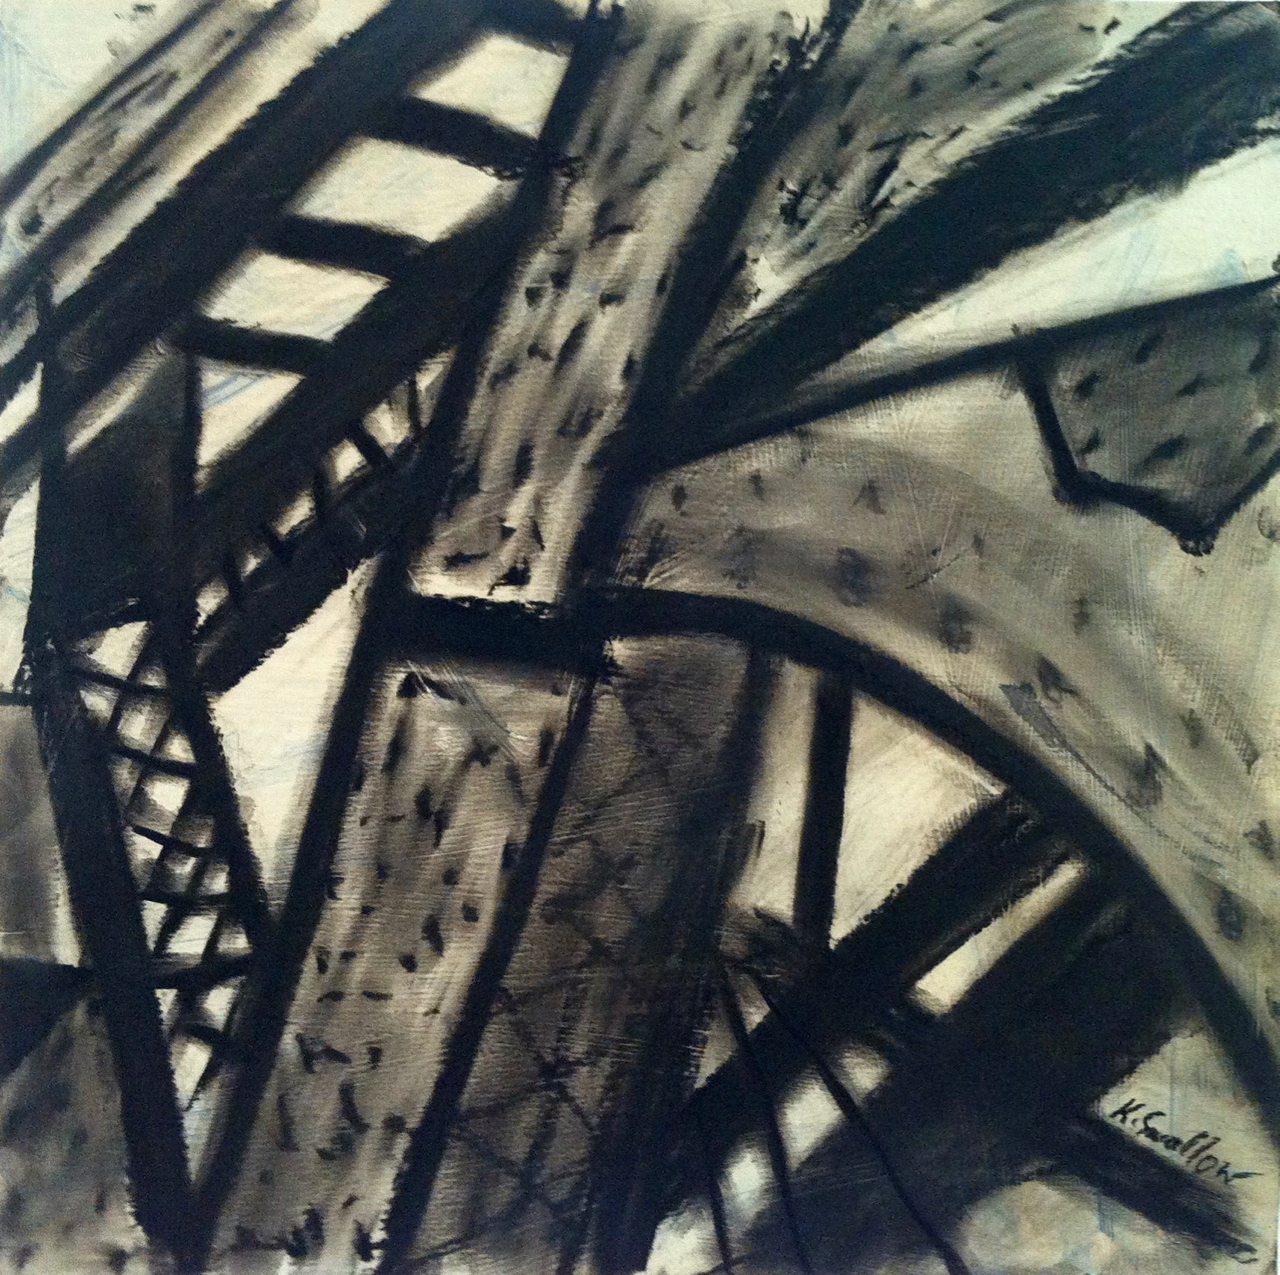 Steel Bridge #1, acrylic and charcoal on record album cover, 12x12, 2012, AVAILABLE